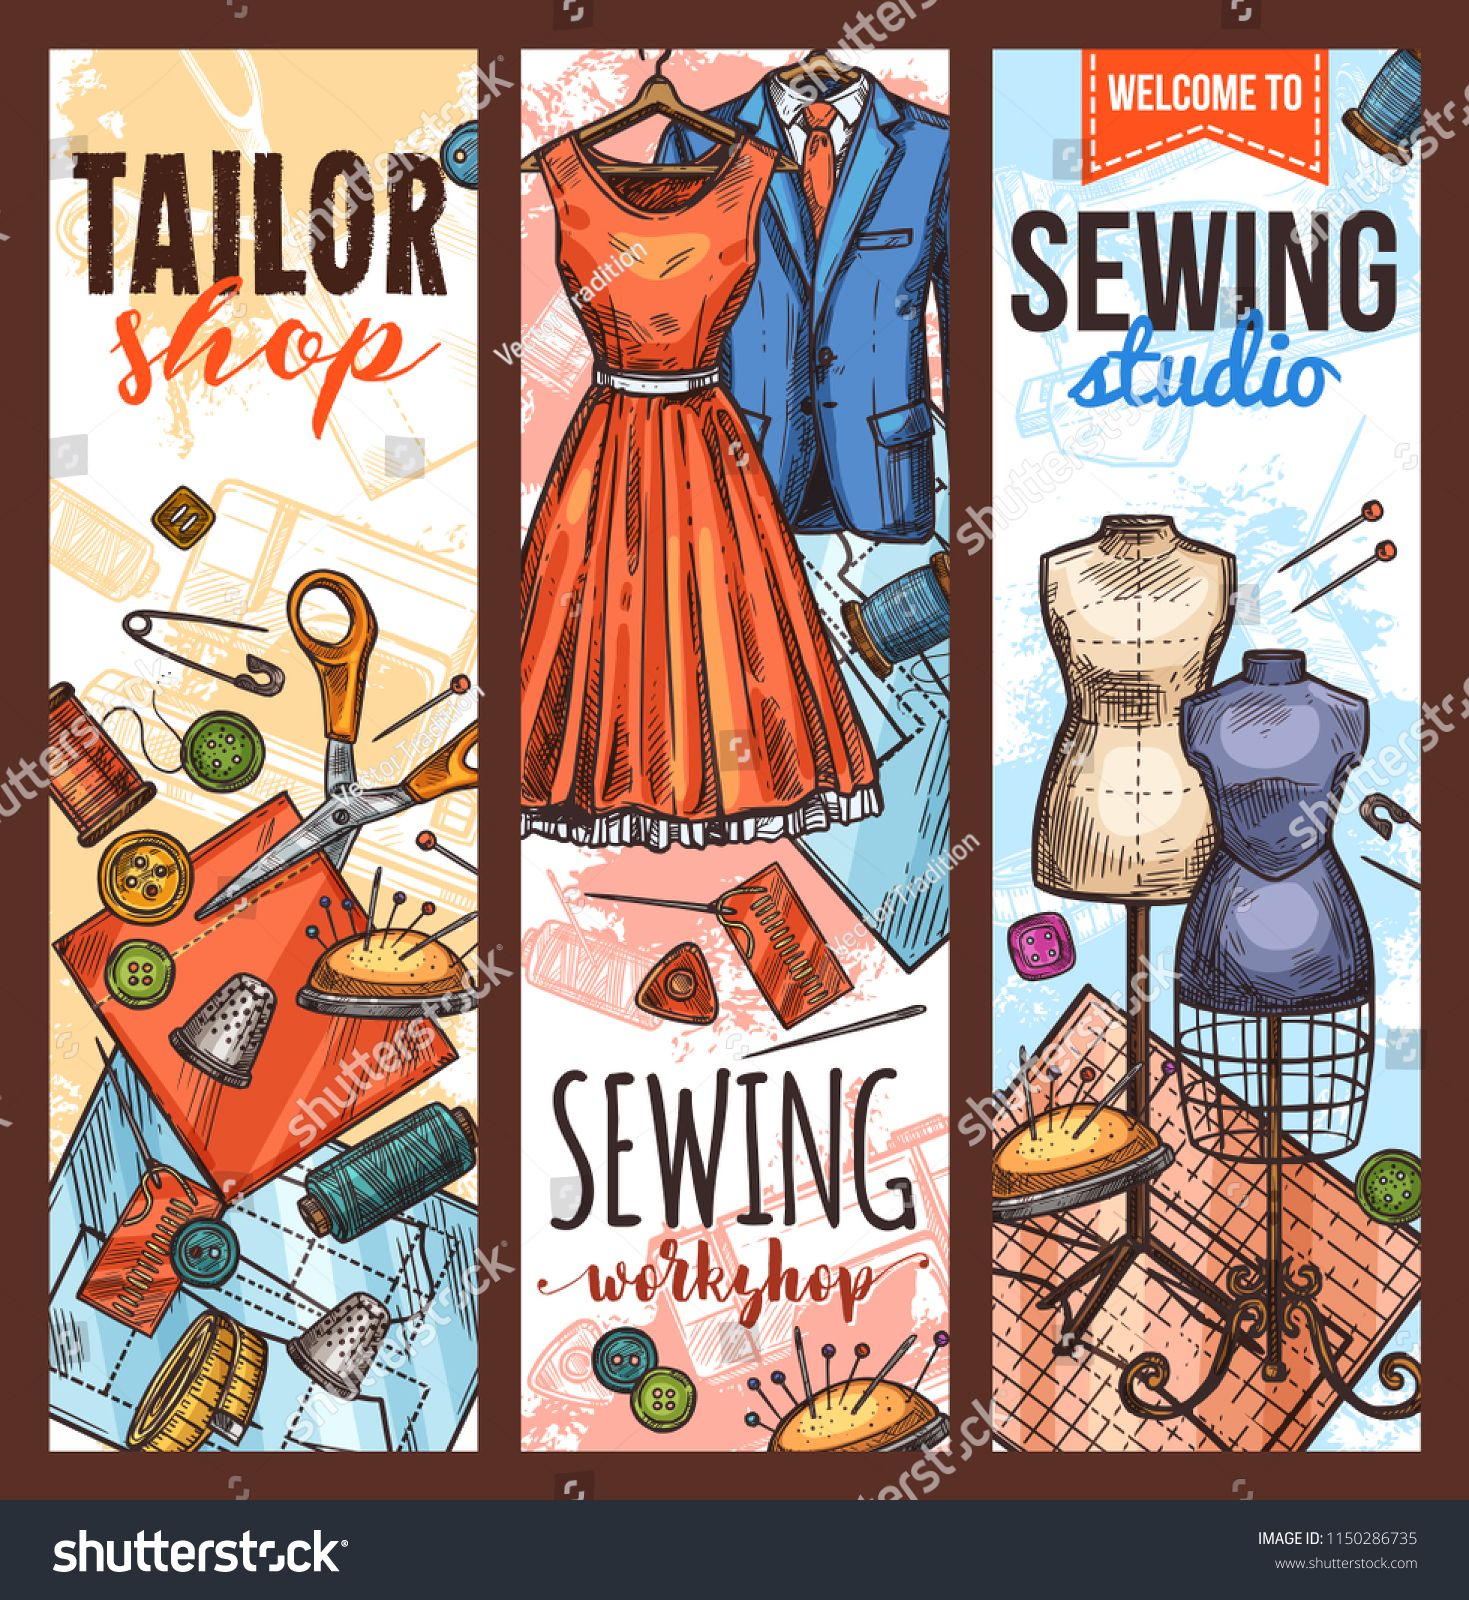 Tailor workshop and sewing studio sketch banner  Fabric